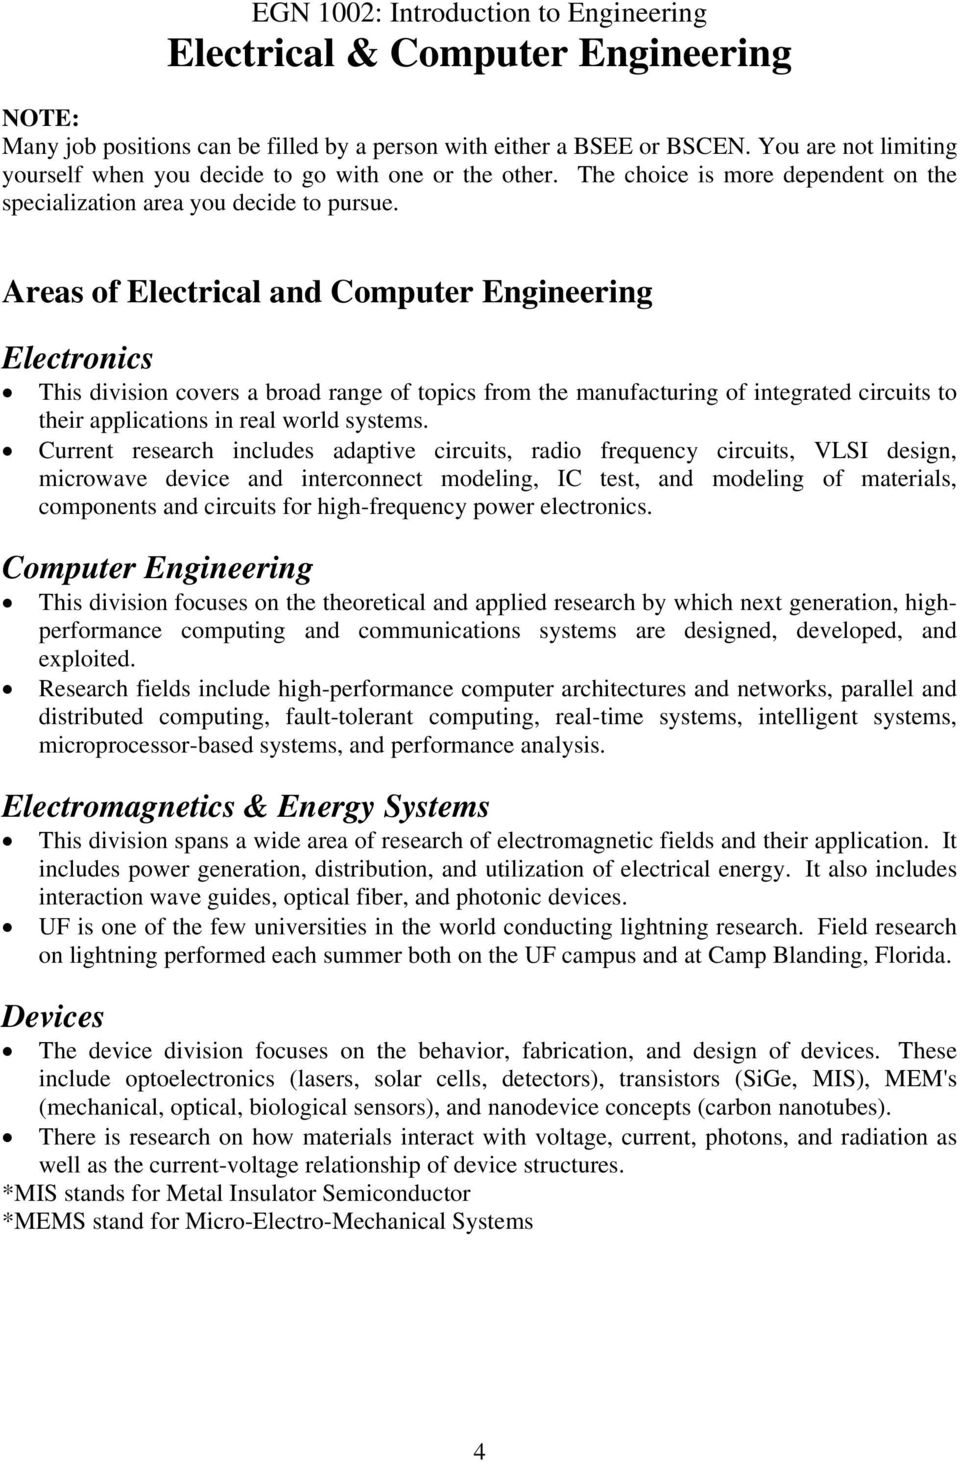 Egn 1002 Introduction To Engineering Electrical Computer And Engineers Specialize In Mechanical Areas Of Electronics This Division Covers A Broad Range Topics From